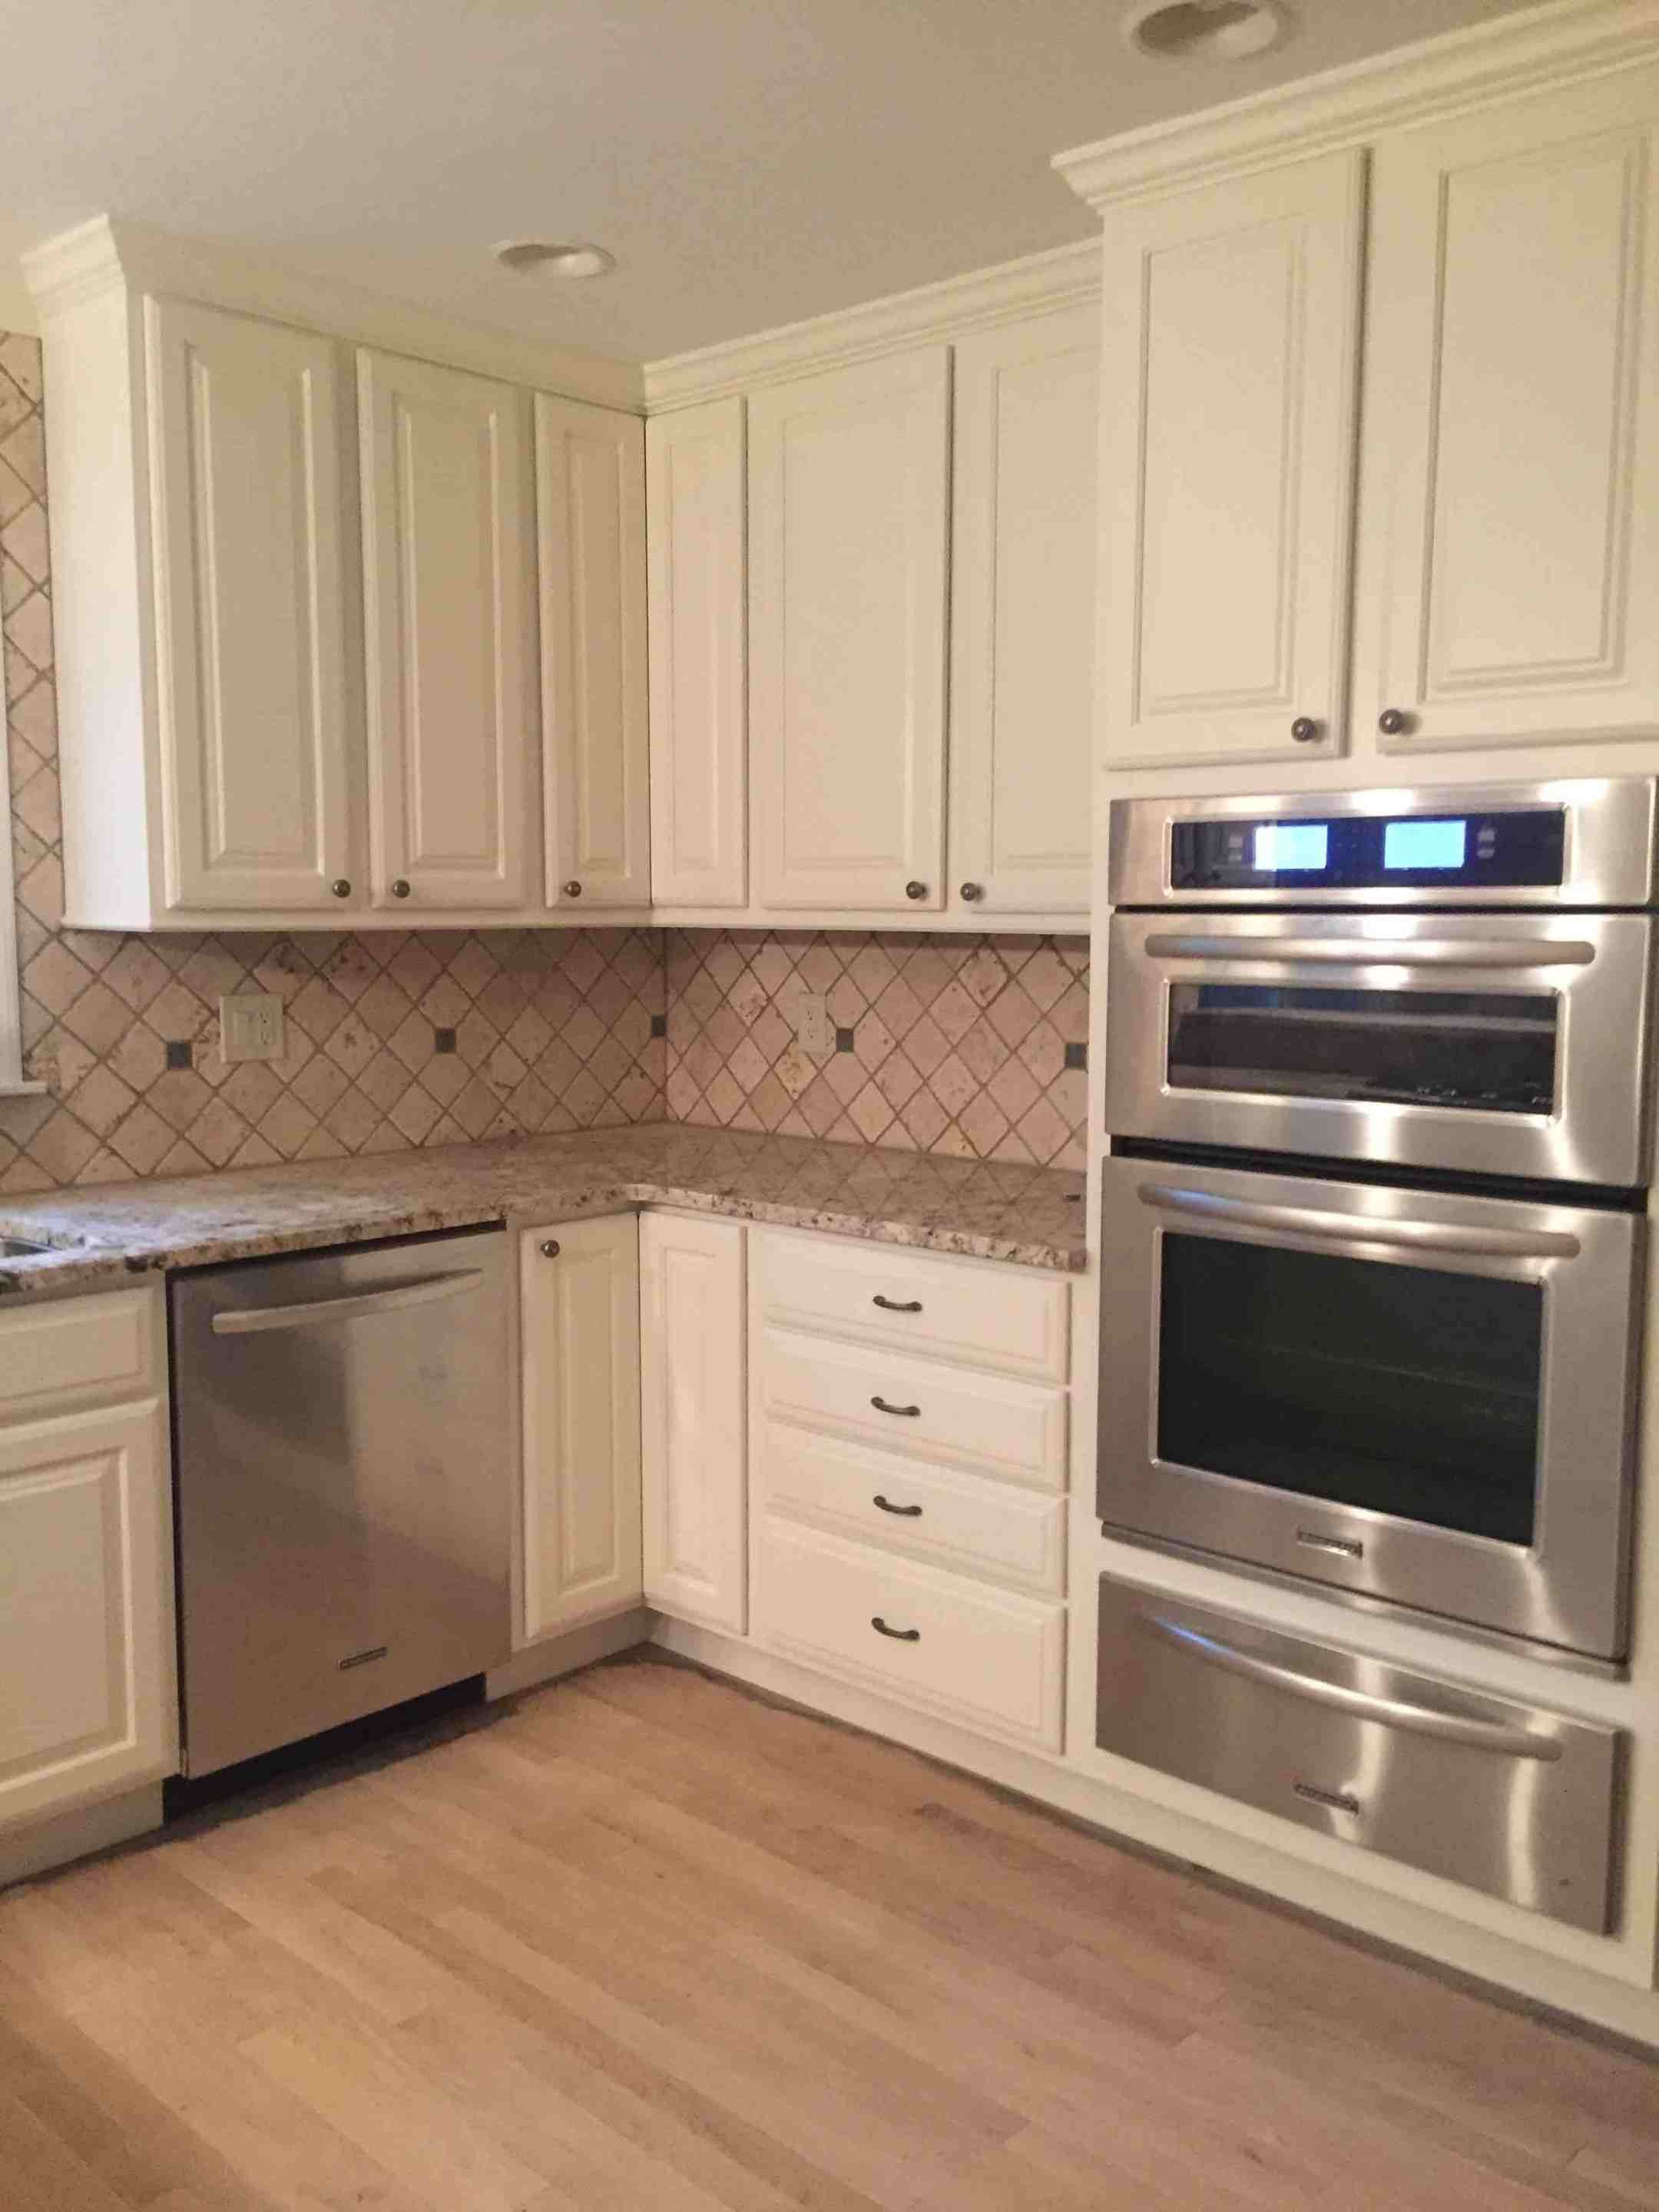 My favorite sherwin williams paint colors kitchens pinterest